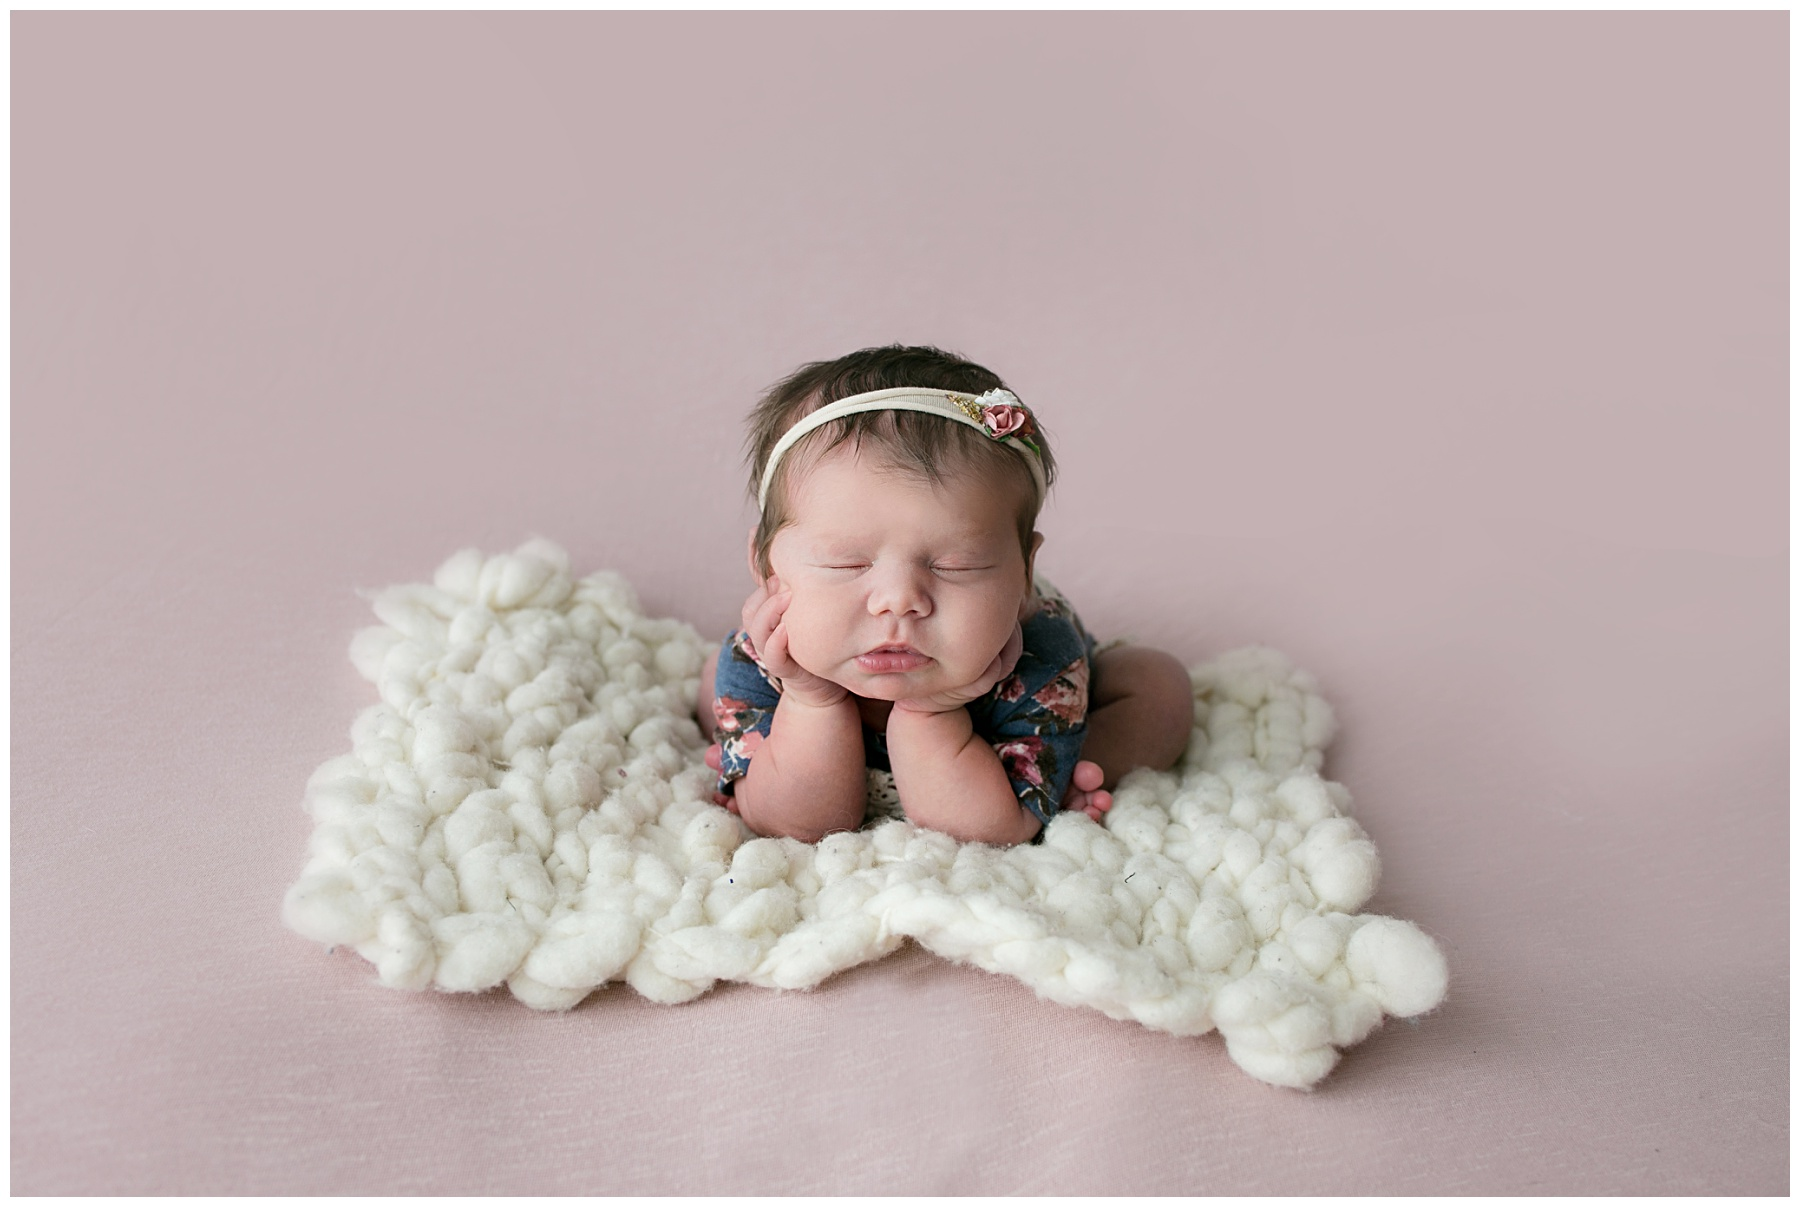 Newborn photographer columbus ohio_0299.jpg